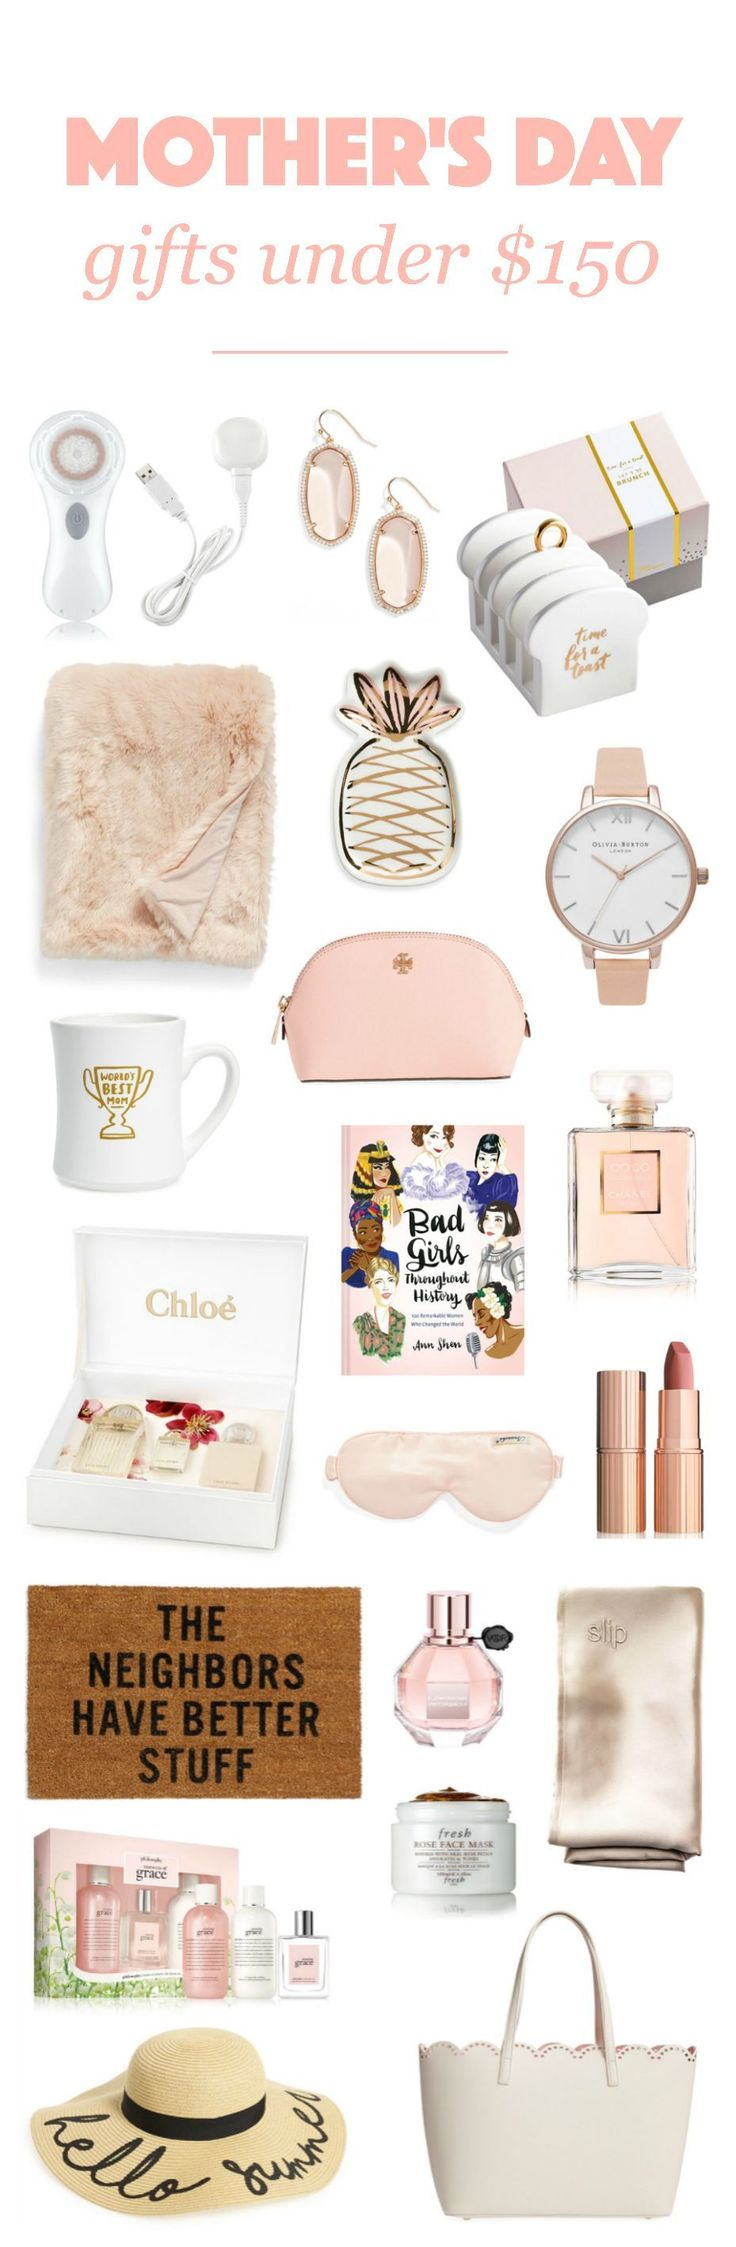 FINALLY a great roundup of affordable gifts! | for Mother's Day. Spoil the moms in your life with affordable home decor, fashion, beauty and kitchenware gifts! #cheaphomedecor